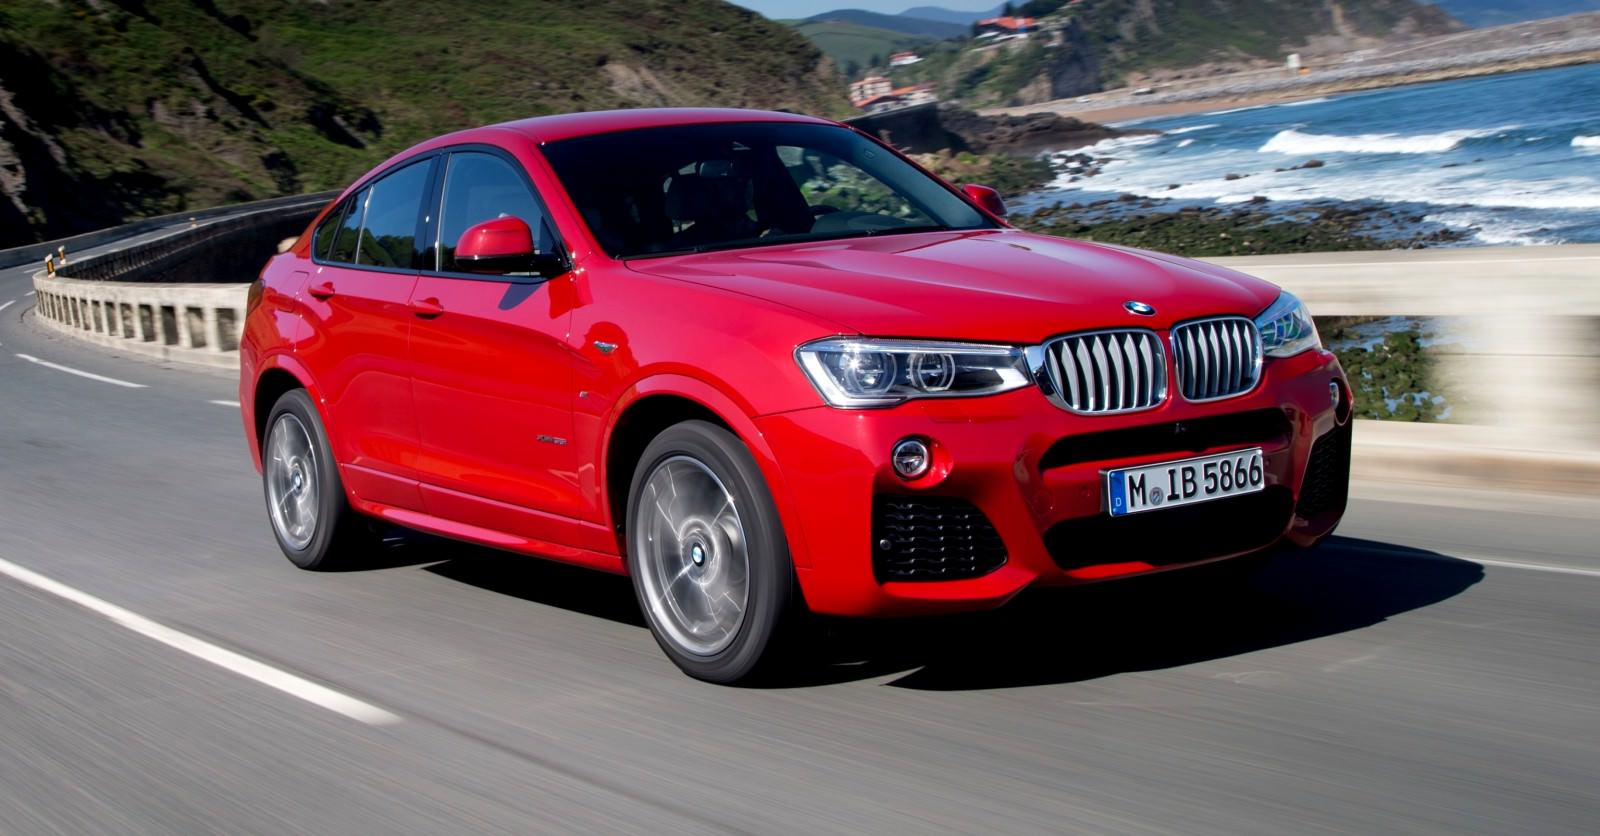 Update2 Debut Photos - 2015 BMW X4 Arriving Now to USA BMW Dealers 35